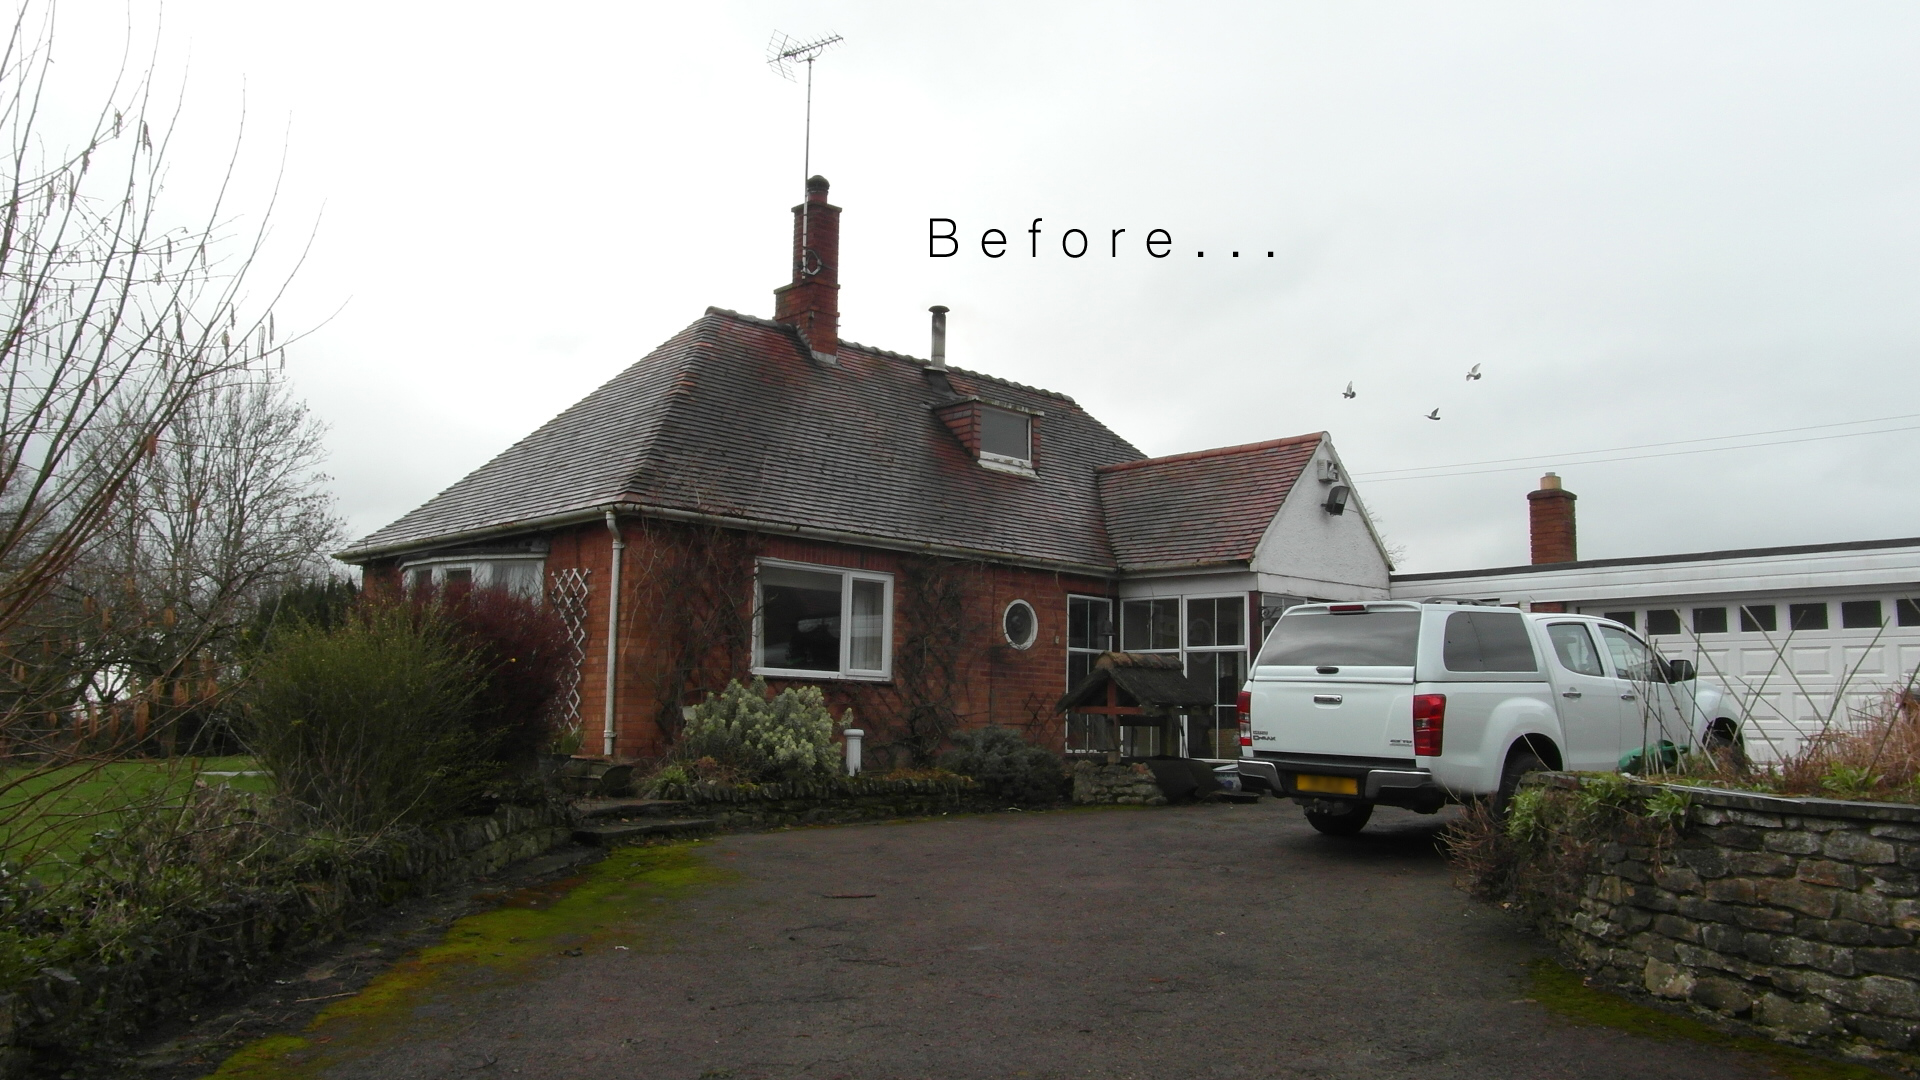 A doomed bungalow...